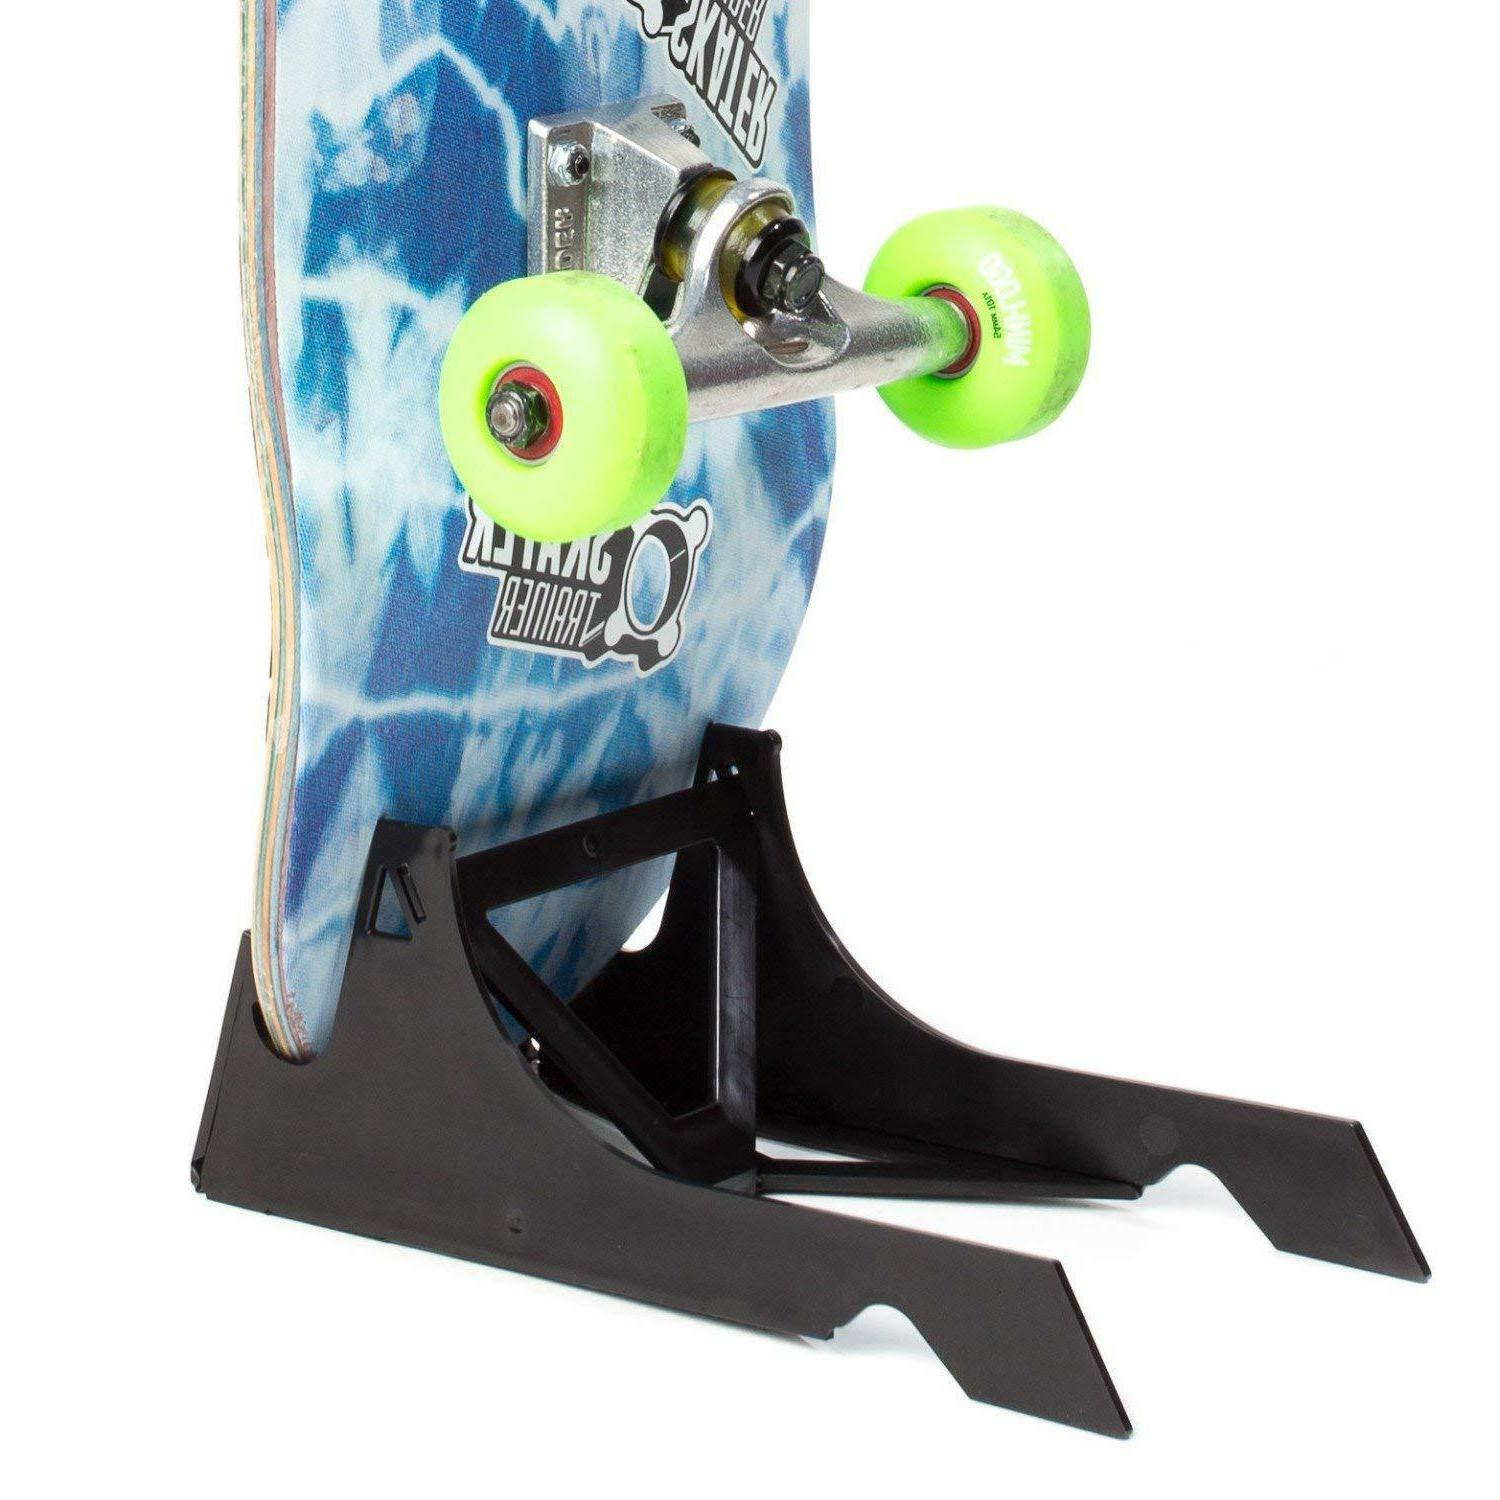 Origami Skateboard Stand and Display Portable Skate Stand, S